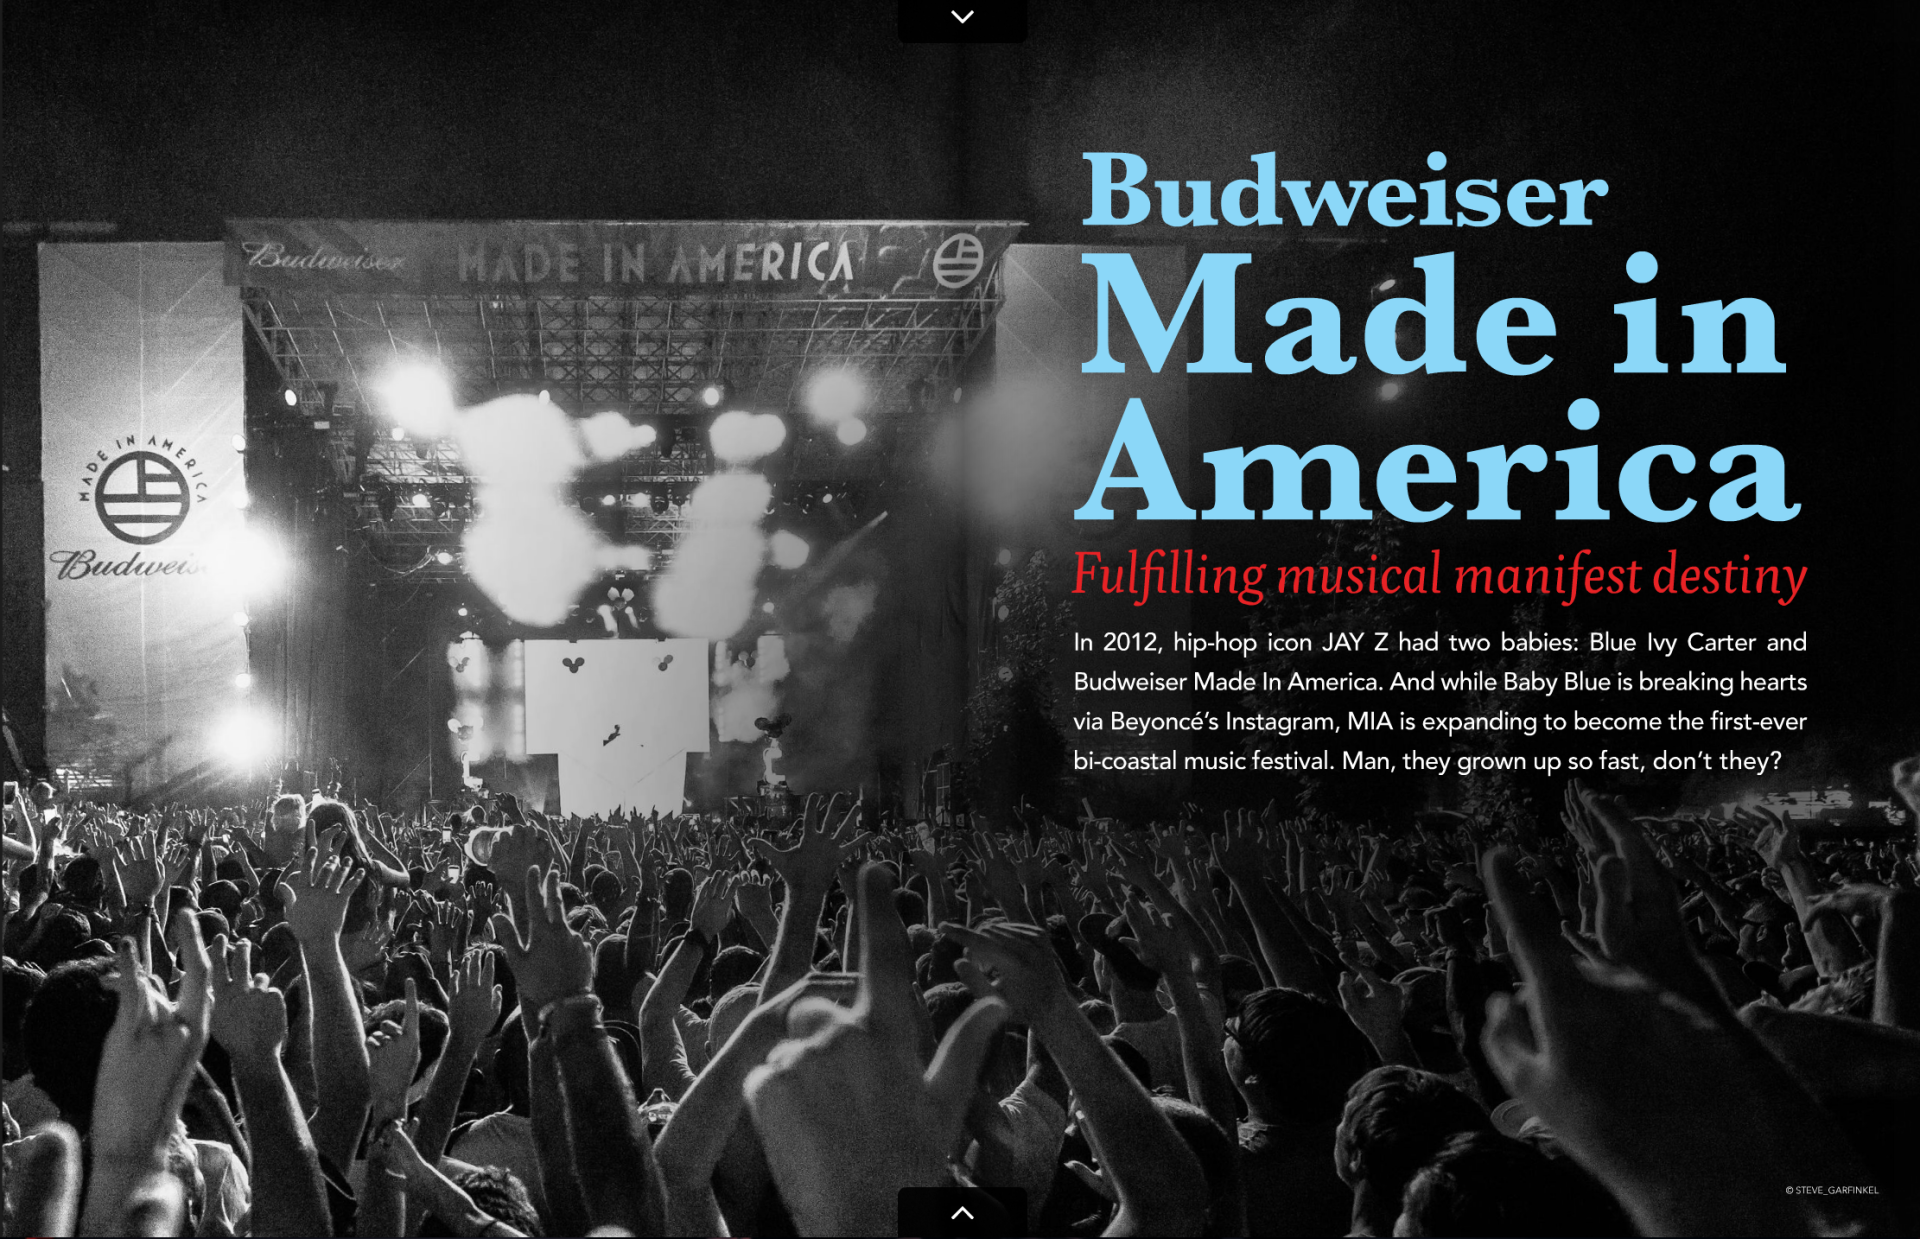 Photo of Deadmau5 from Made in America Festival 2013 used for a two page spread